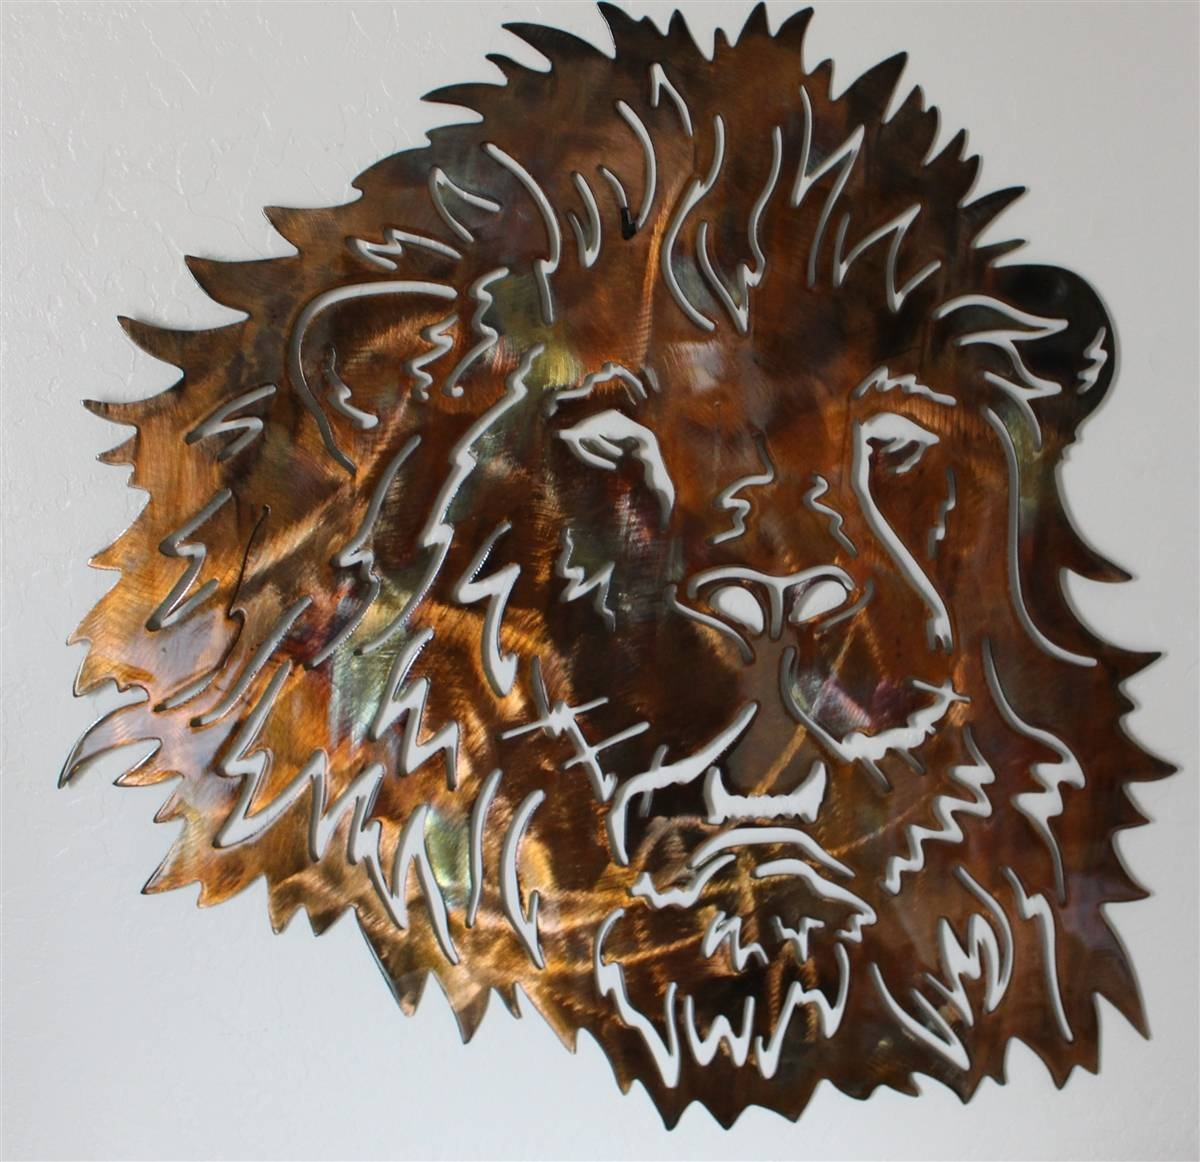 Lionhead 2 Pertaining To Most Up To Date Animal Metal Wall Art (View 10 of 20)